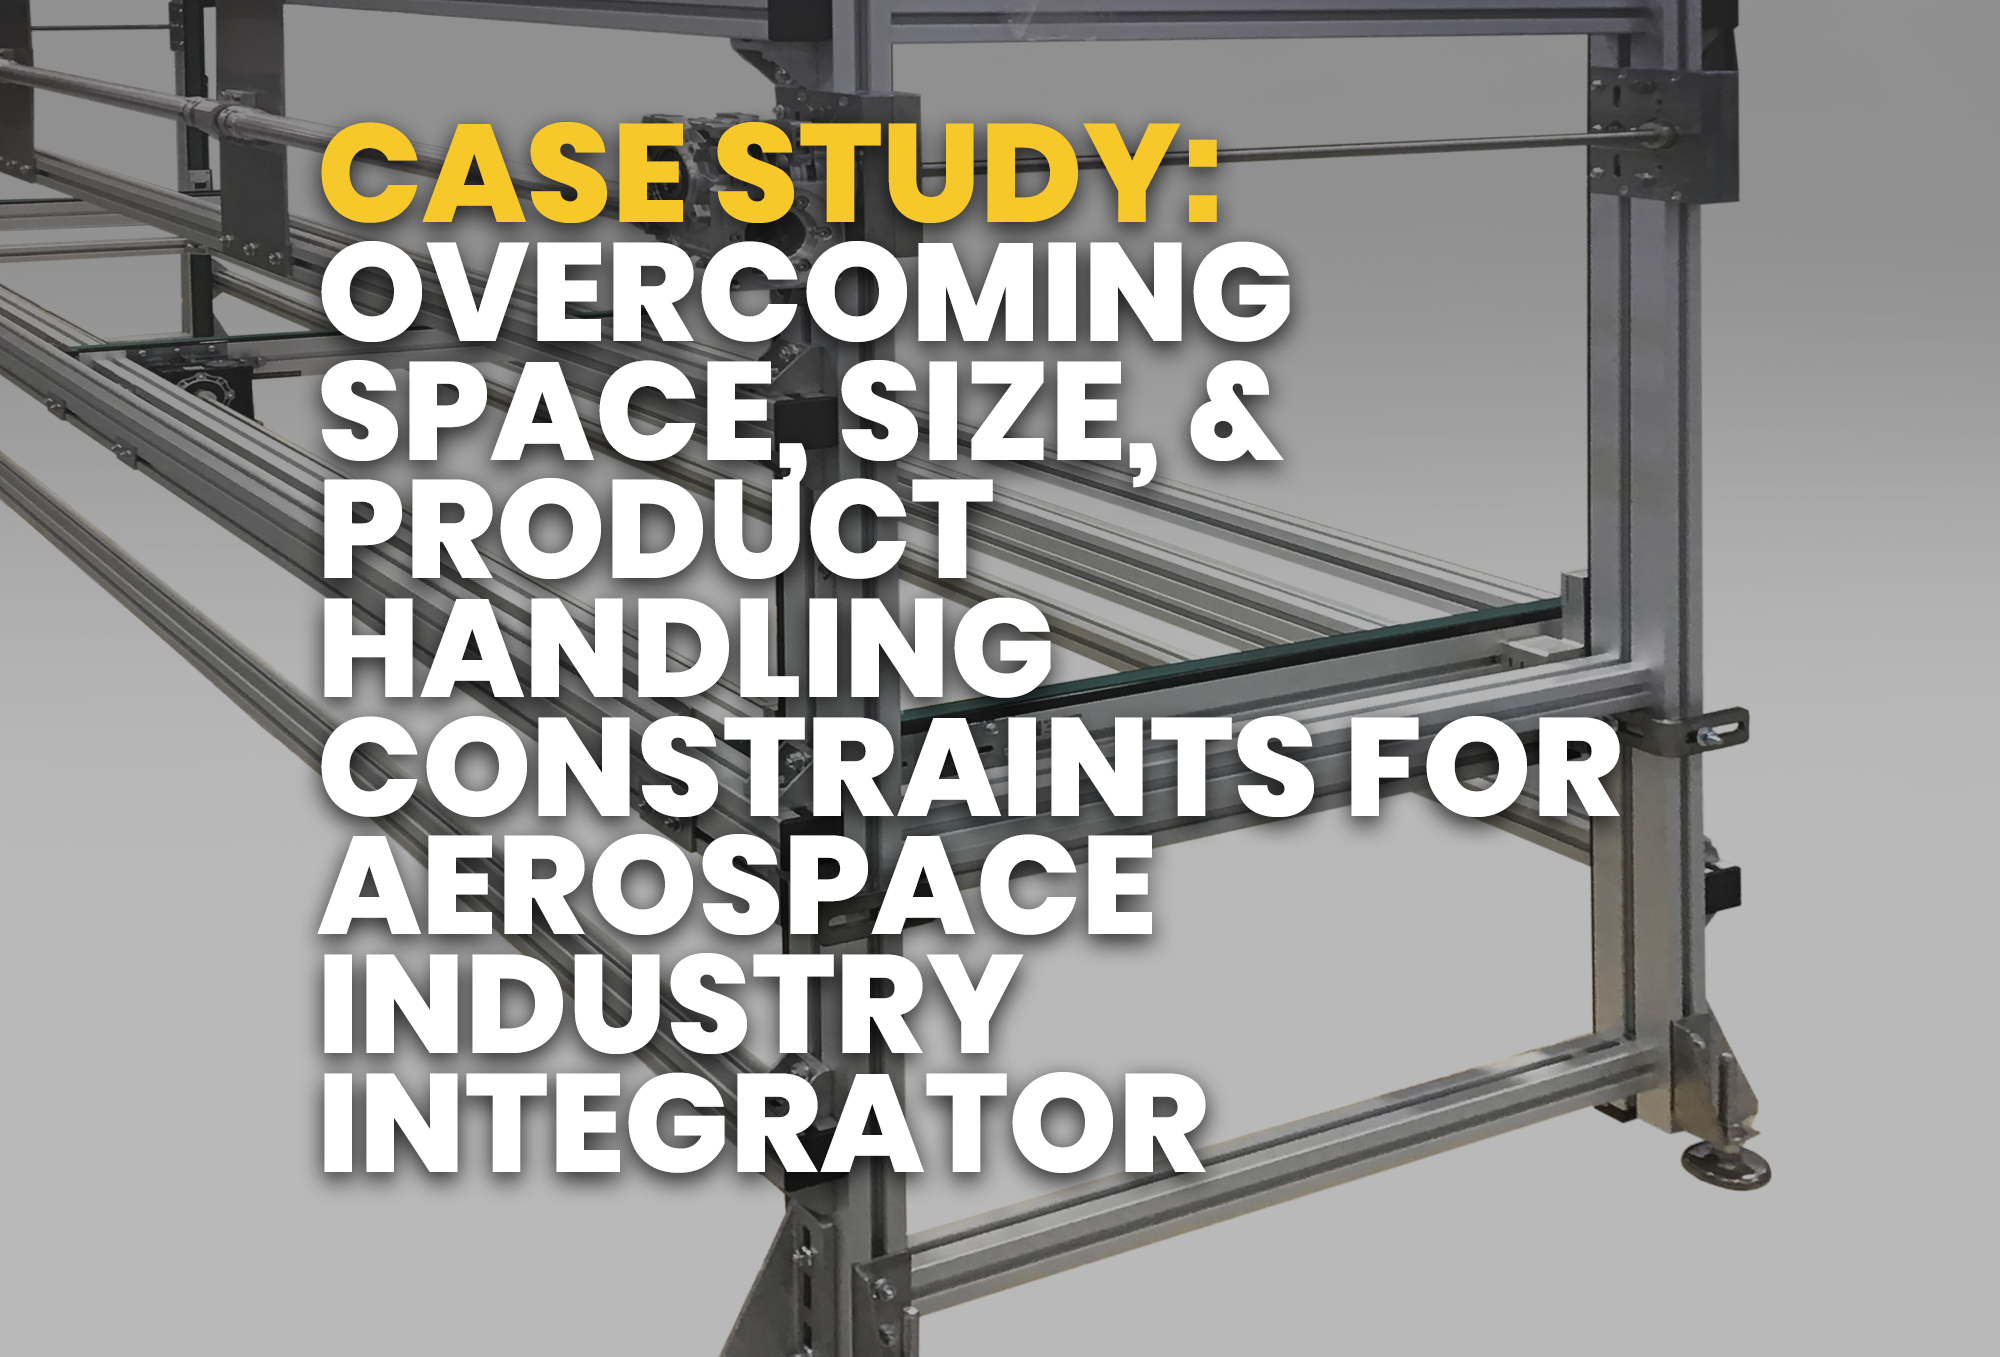 case study- overcoming Space, Size, & Product Handling Constraints for Aerospace Industry Integrator